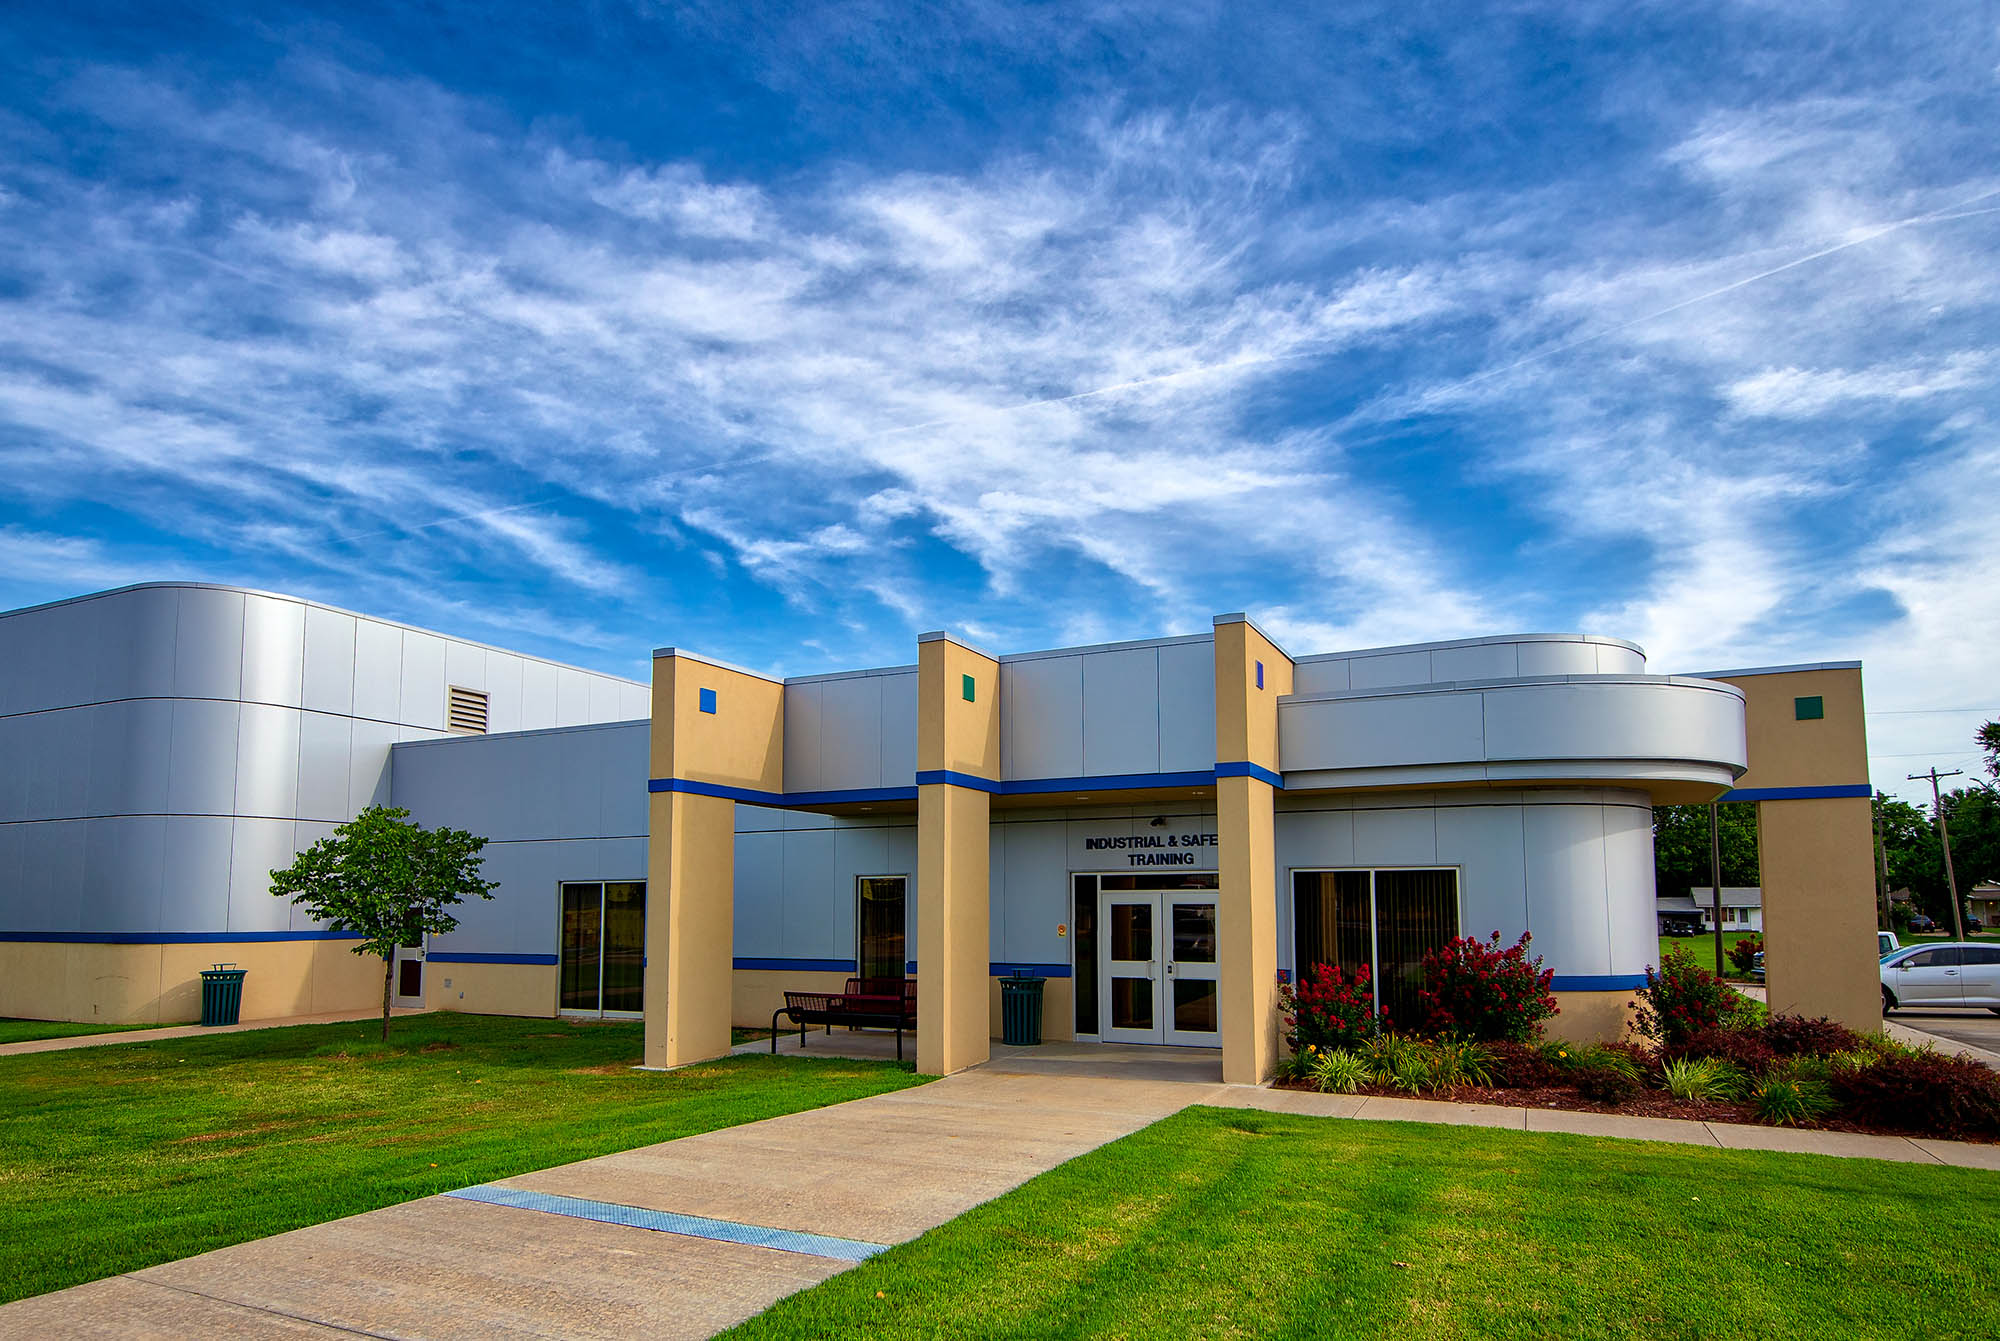 Sapulpa Central Techs Industrial and Safety Training Building